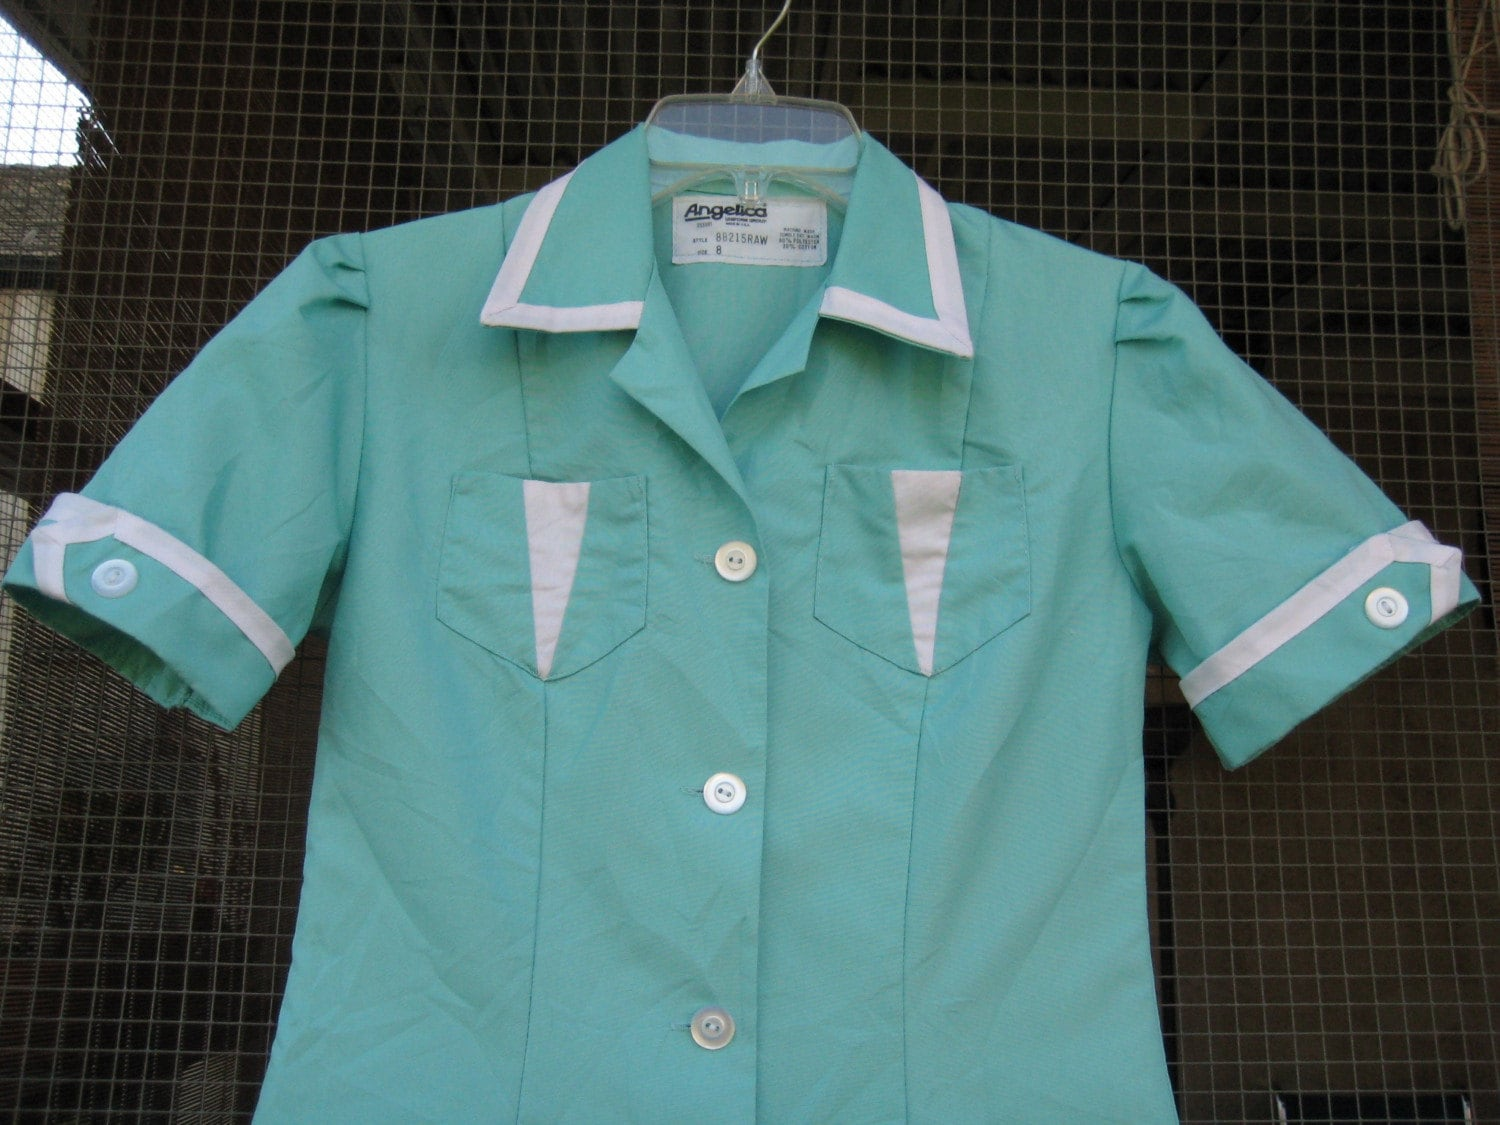 Vintage TURQUOISE WAITRESS UNIFORM dress S/M